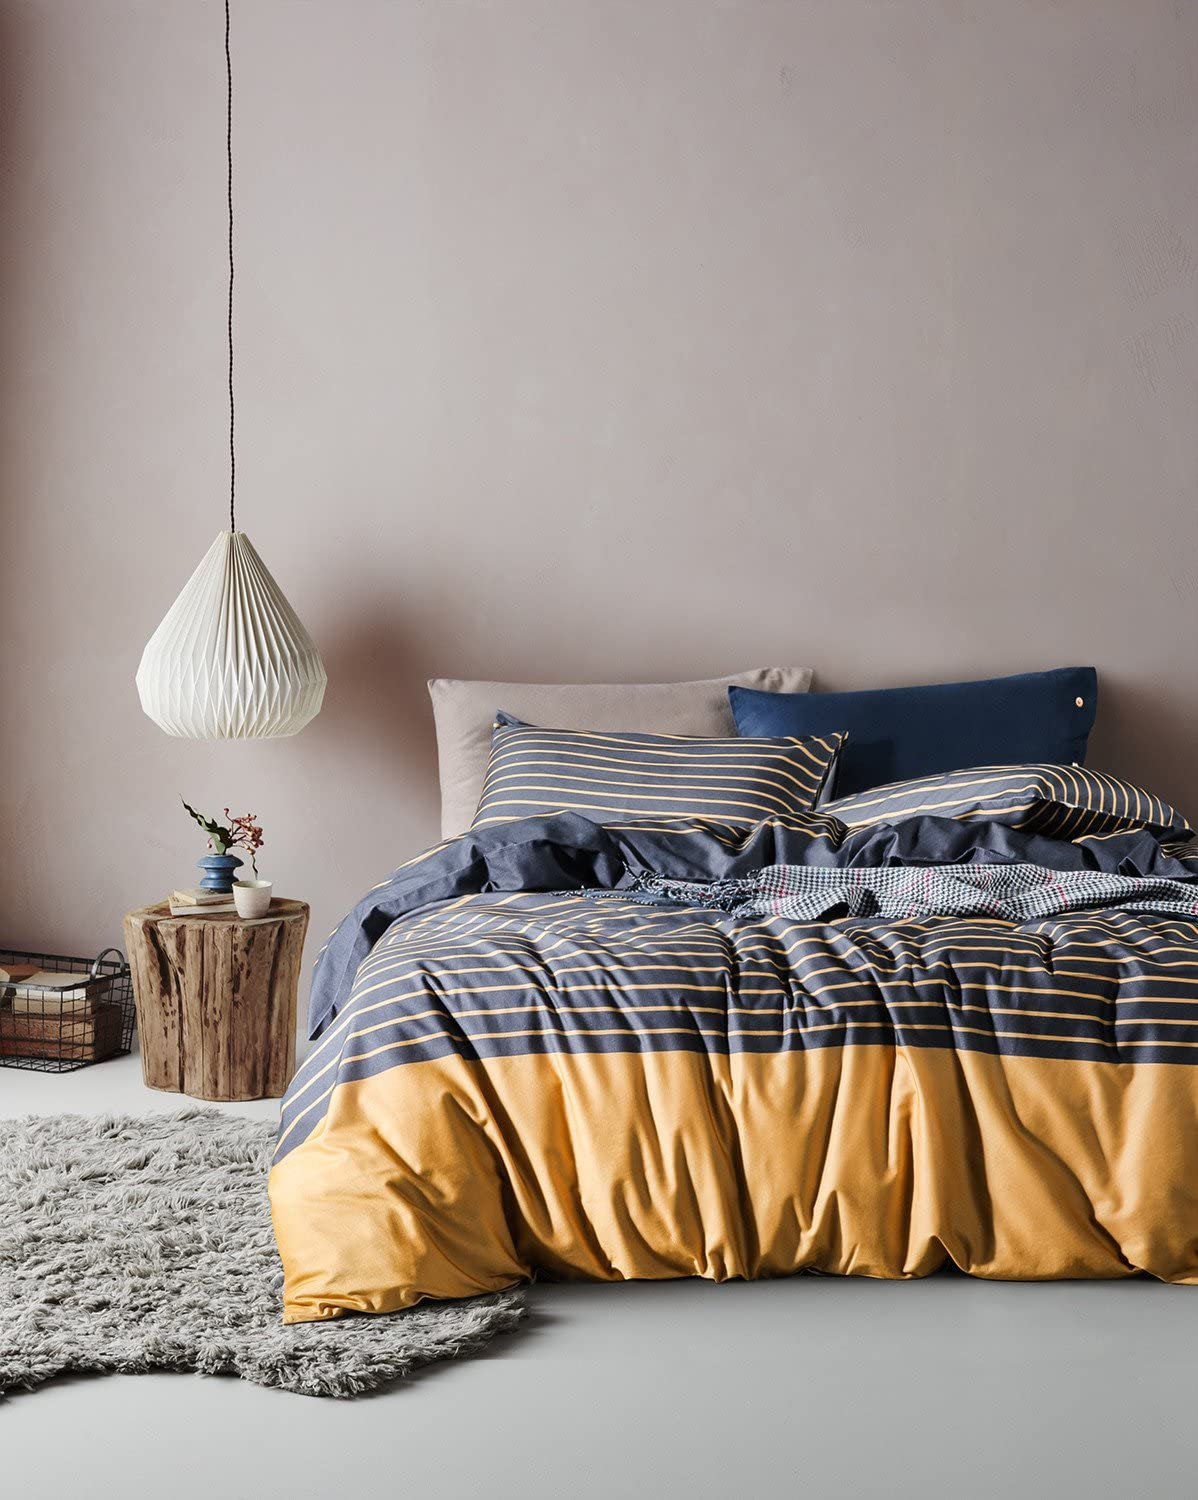 UFO Home Home 100% Cotton Flannel 3pc Duvet Cover Set, Yarn-Dyed Bedding Set, 600 Thread Count High Percale, Yellow Dark Blue Stripes Design (Full, Caspar)